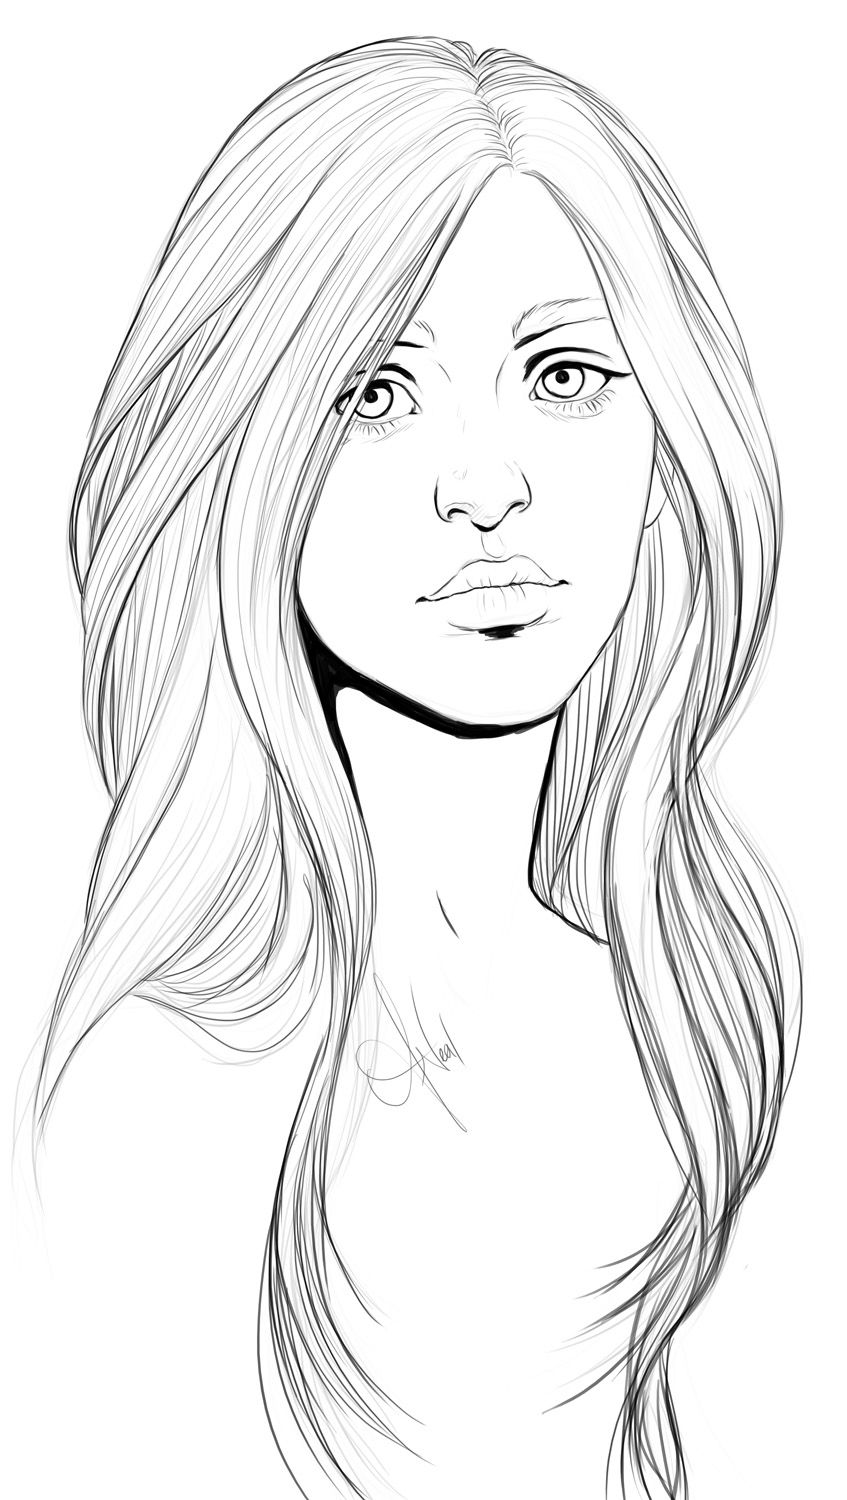 coloring face in photoshop faces templates drawing at getdrawings free download face coloring photoshop in